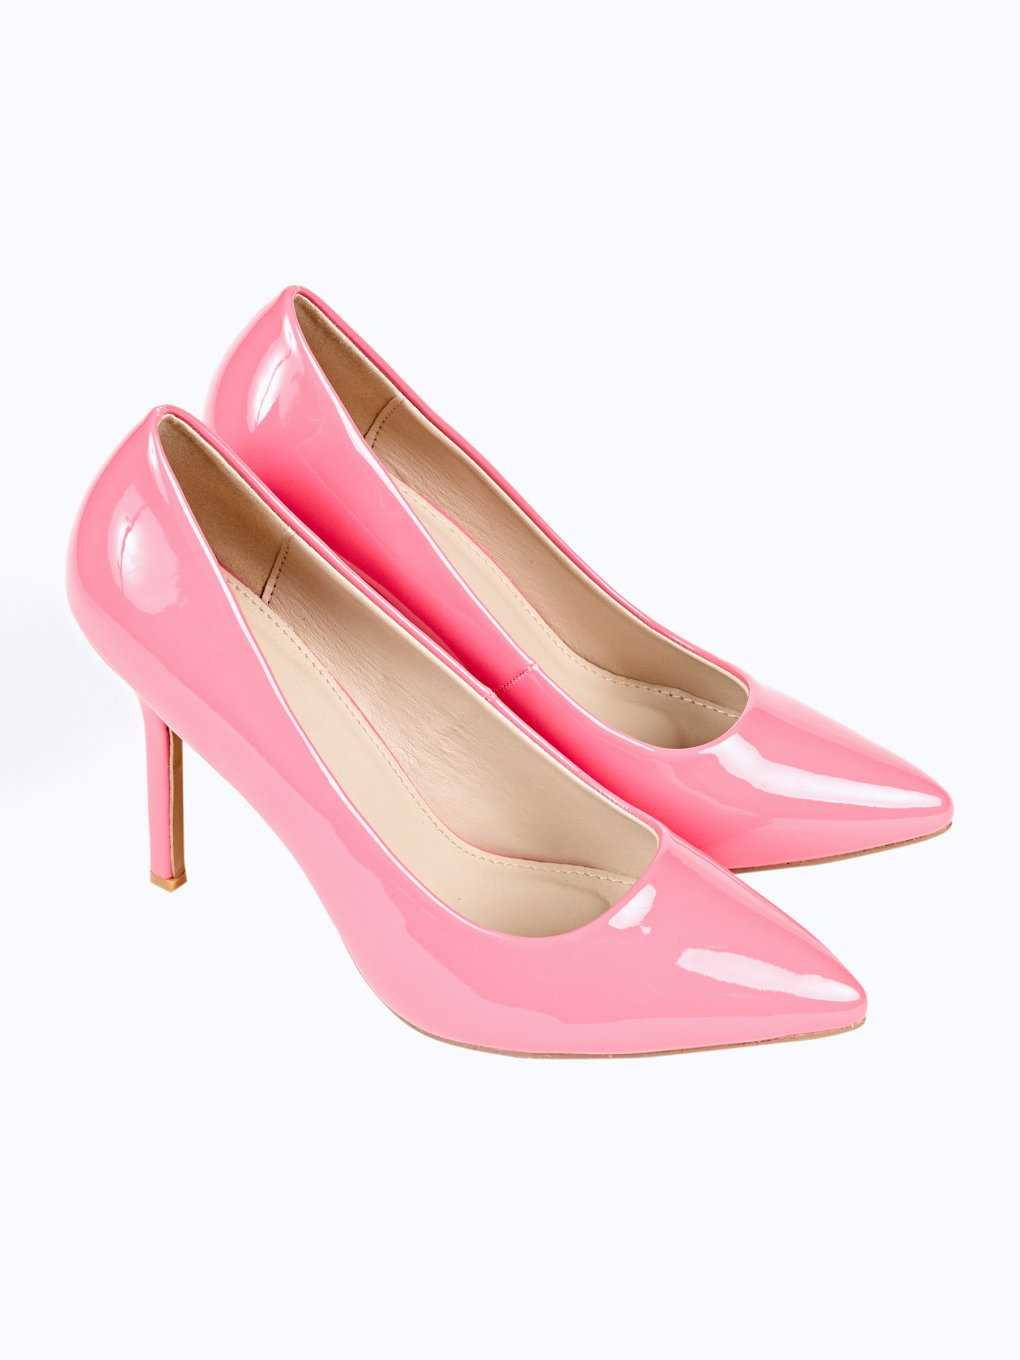 PATENT FINISH PASTEL PUMPS